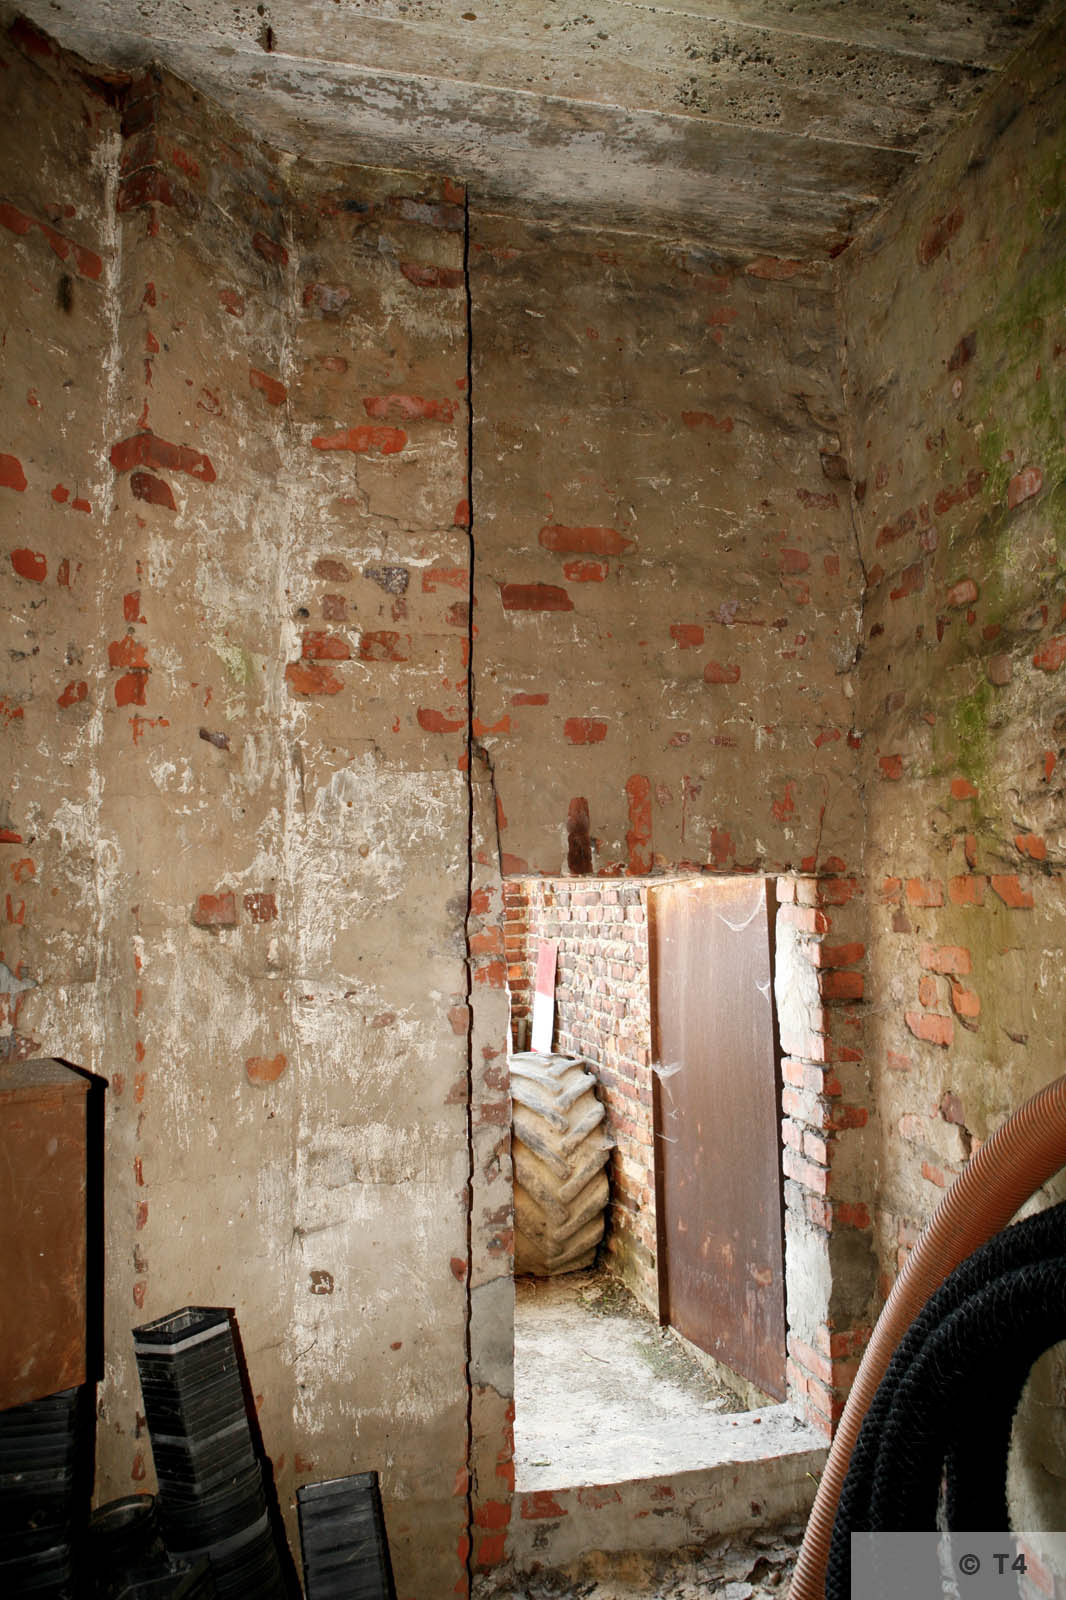 Inside of guard tower in South East corner of former sub camp. 2006 T4 6863